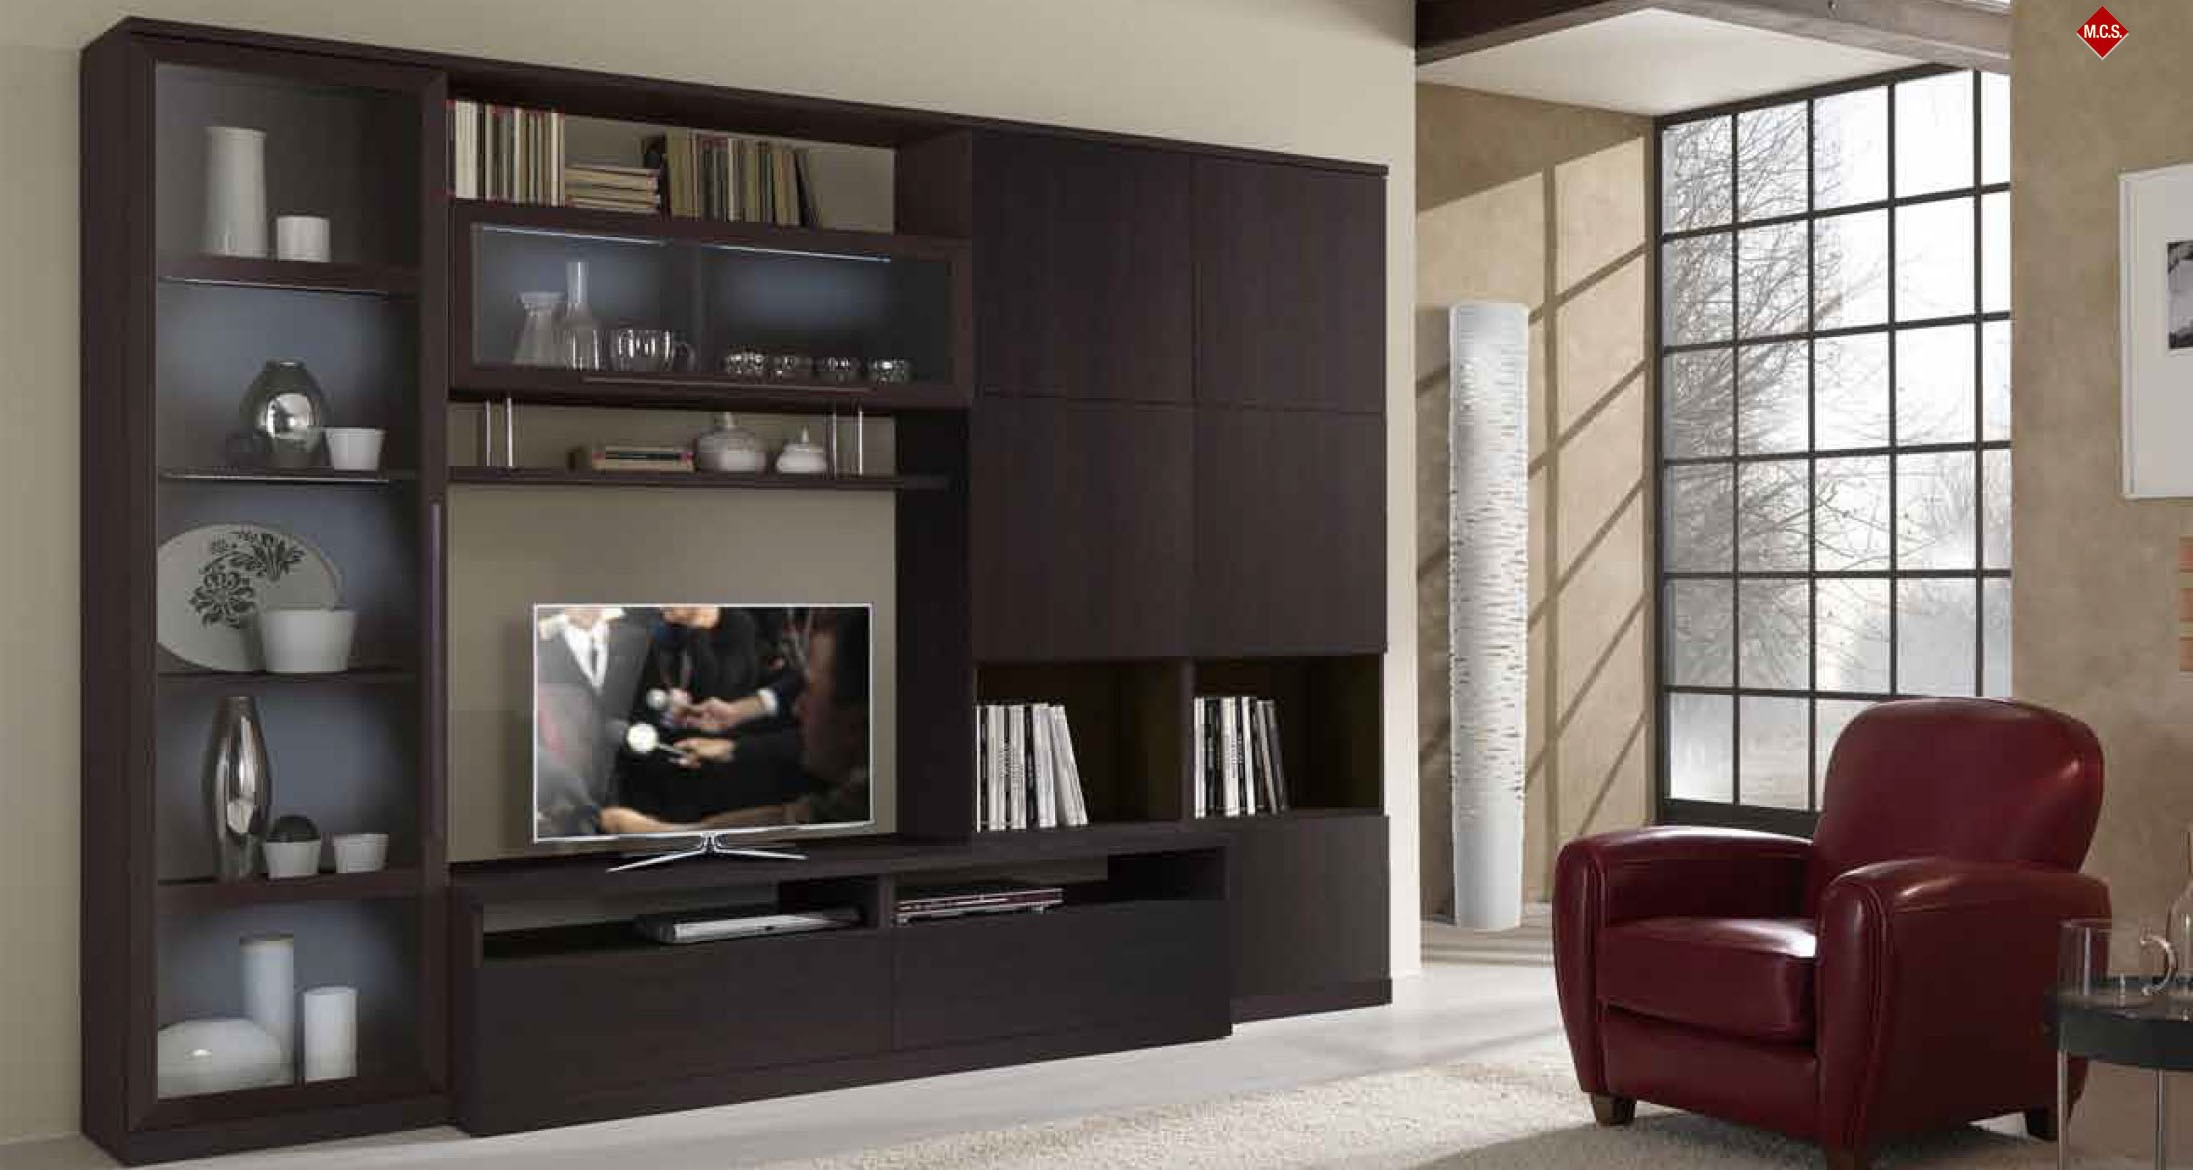 Modern Living Room Wall Units 20 modern tv unit design ideas for bedroom & living room with pictures